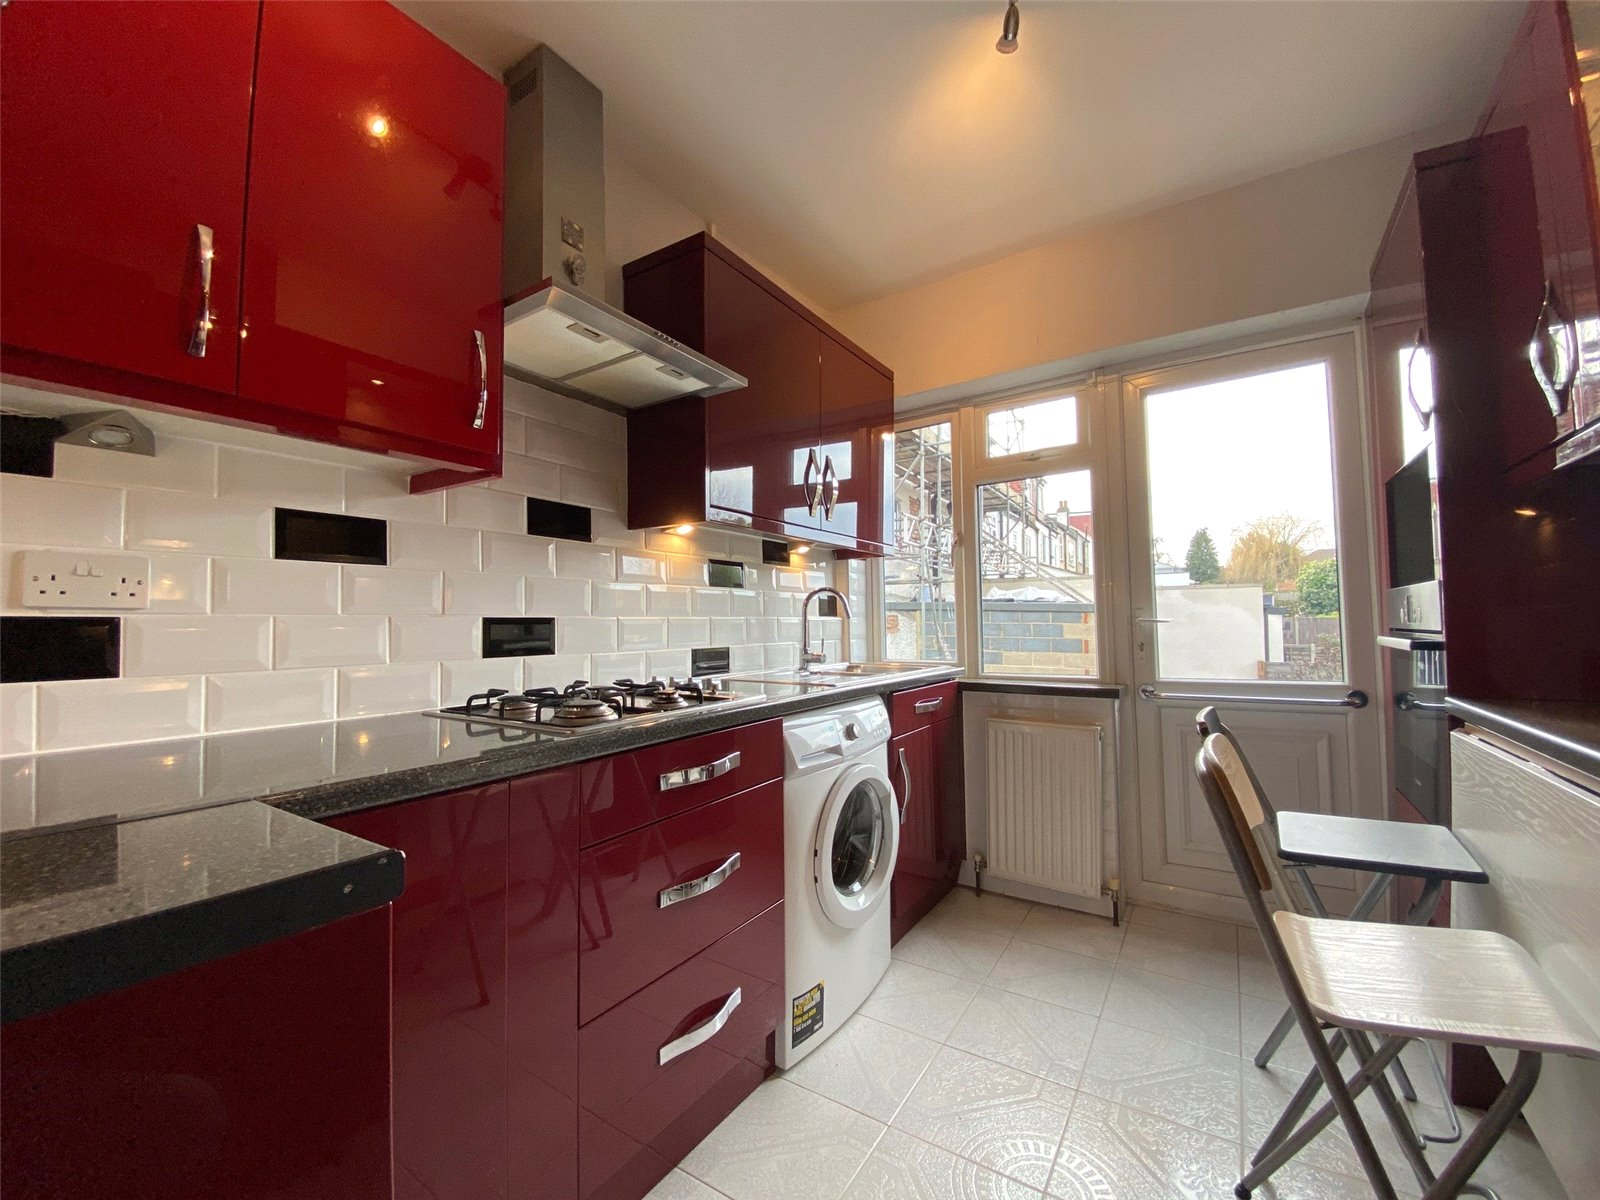 2 bed maisonette to rent in Southgate, N14 4DB, N14